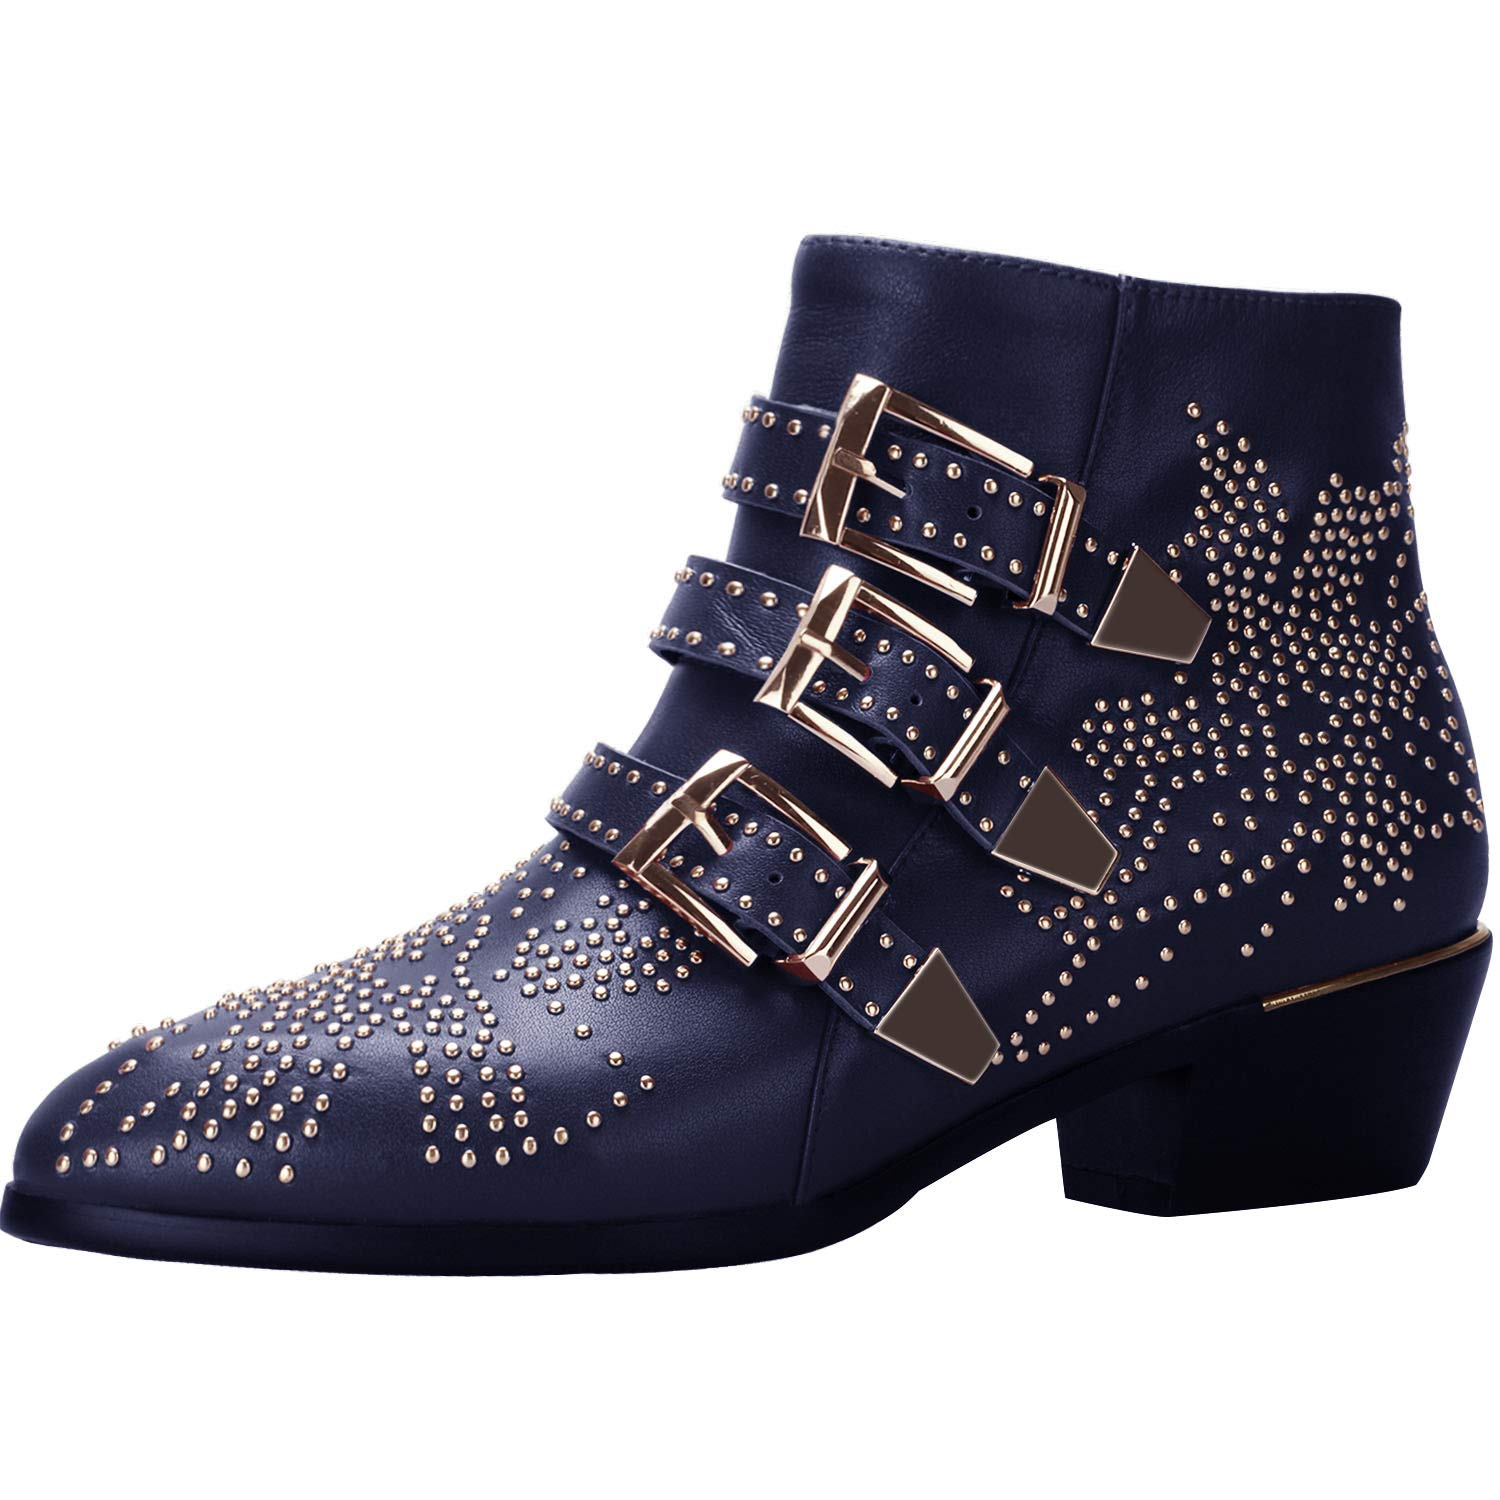 f0ddff98b0 Comfity Boots for Women, Women's Leather Boot Rivets Studded Shoes ...